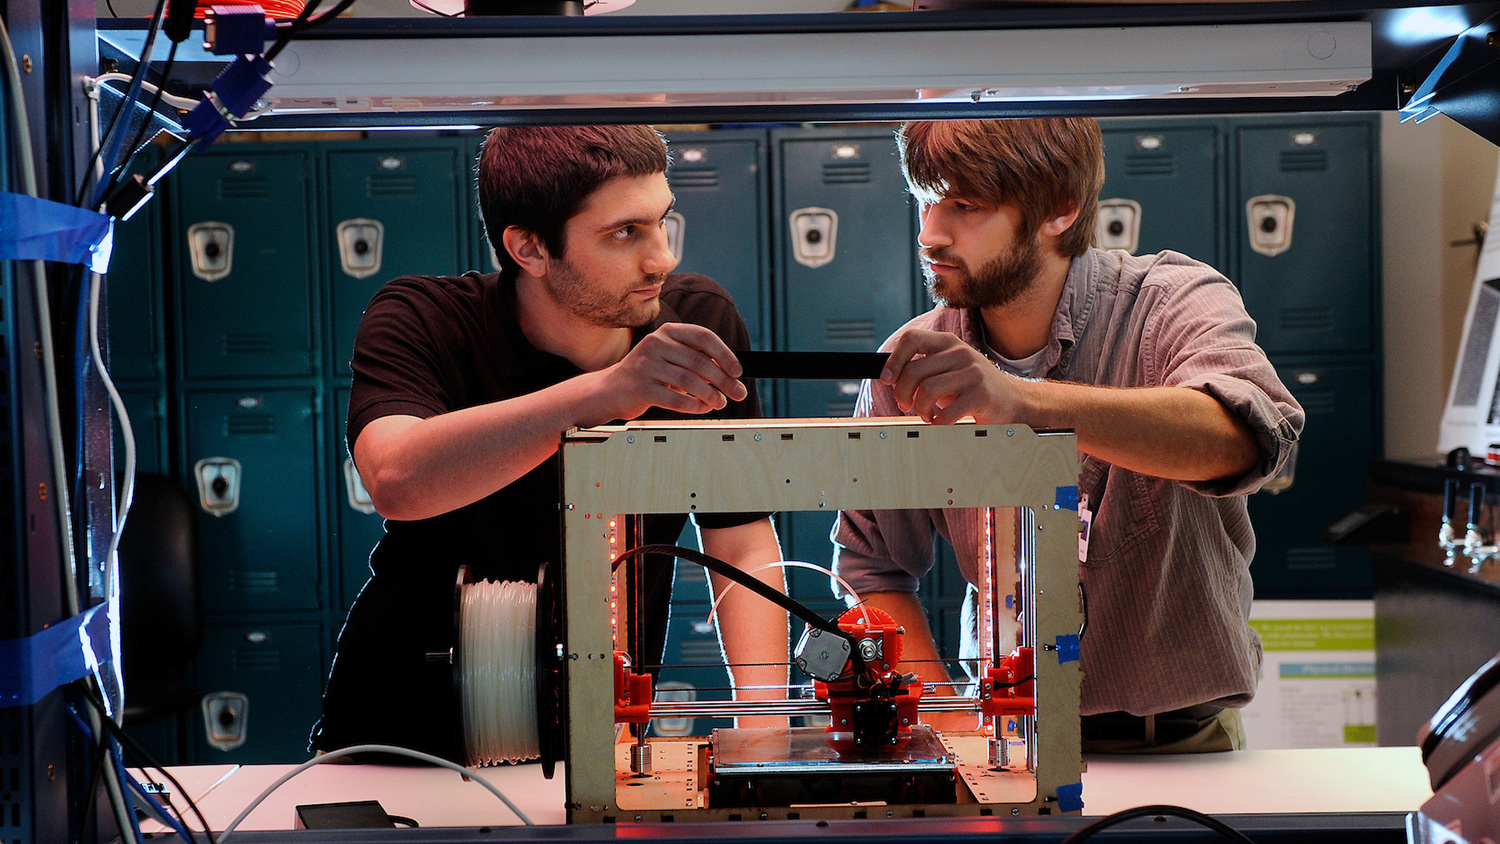 Two young men standing behind a 3-D printer.